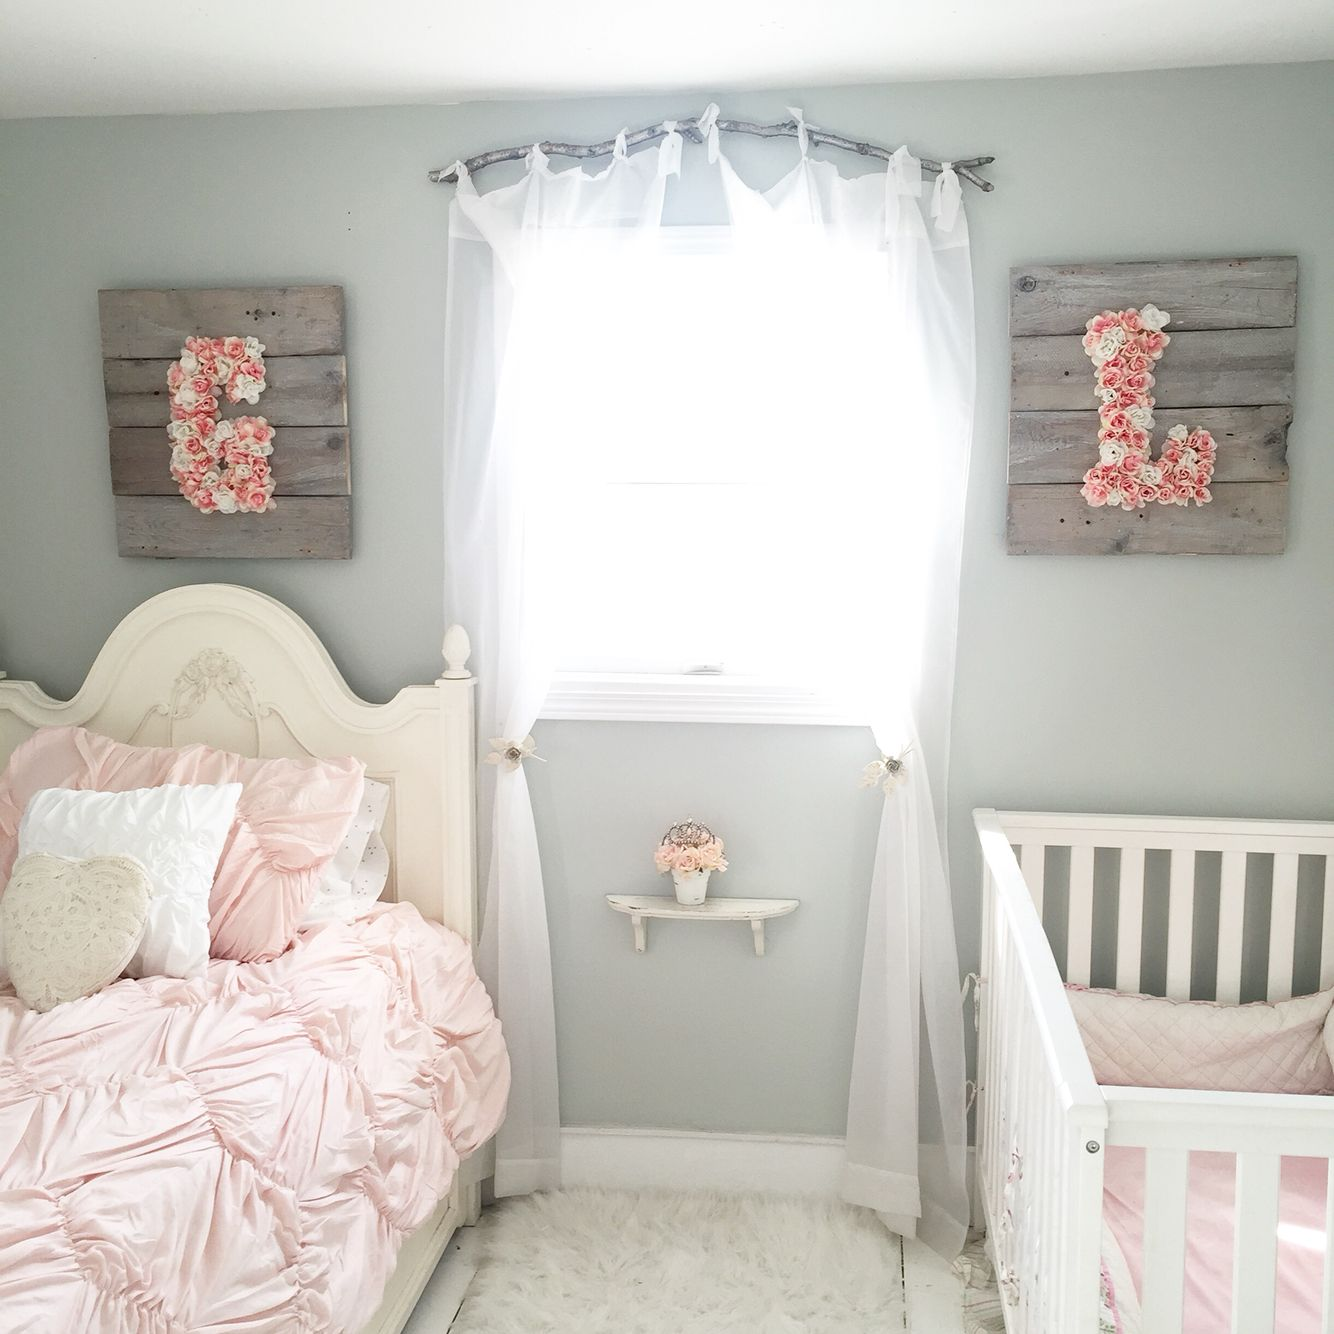 Cute Shared Room: Shop Floral Monograms At Littlebrownnest .etsy . Com In